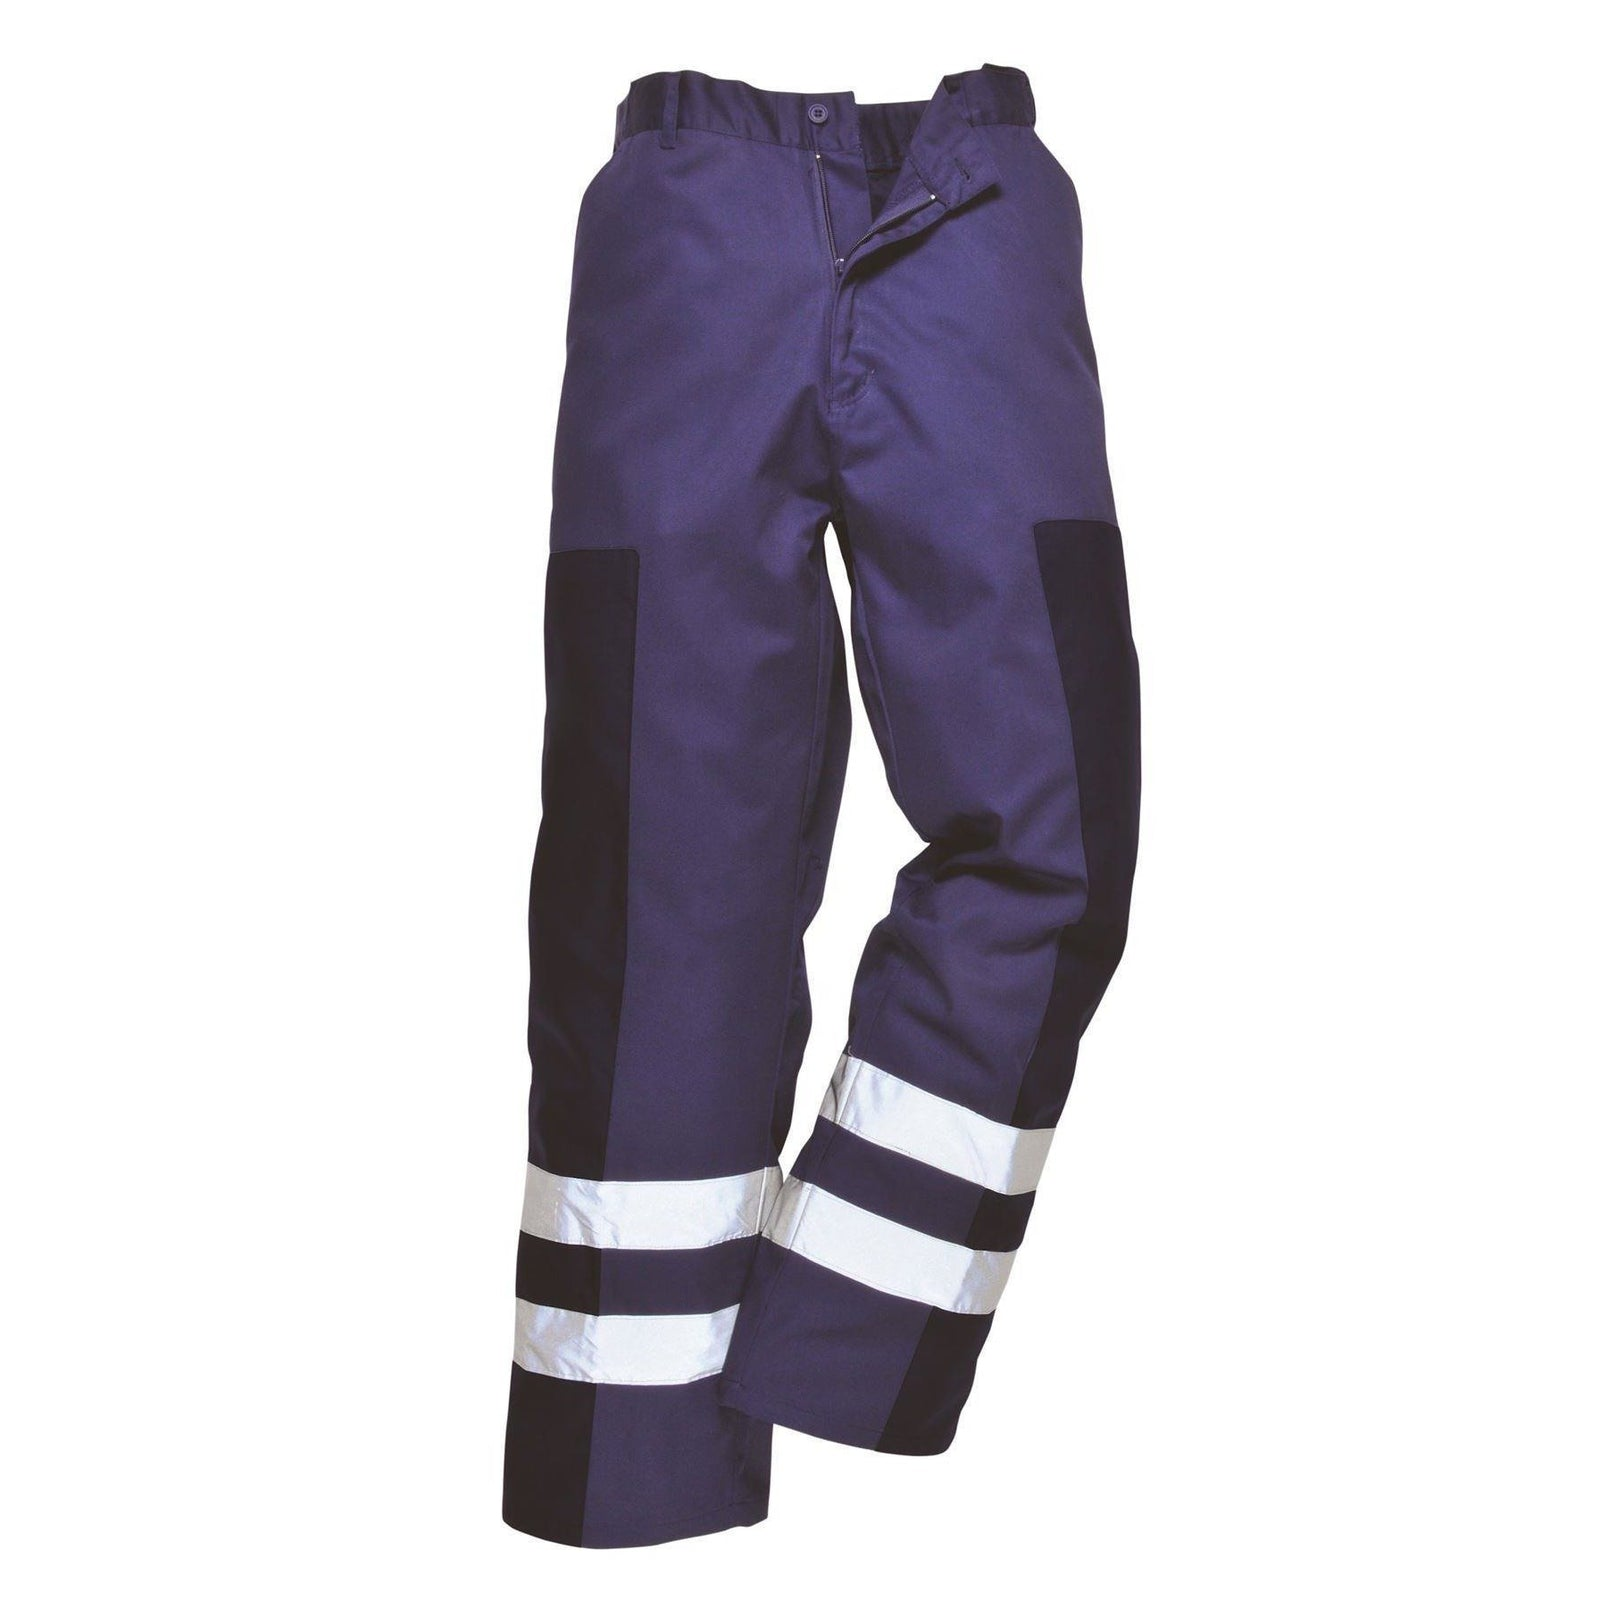 Portwest Ballistic Trousers S918 - reid outdoors